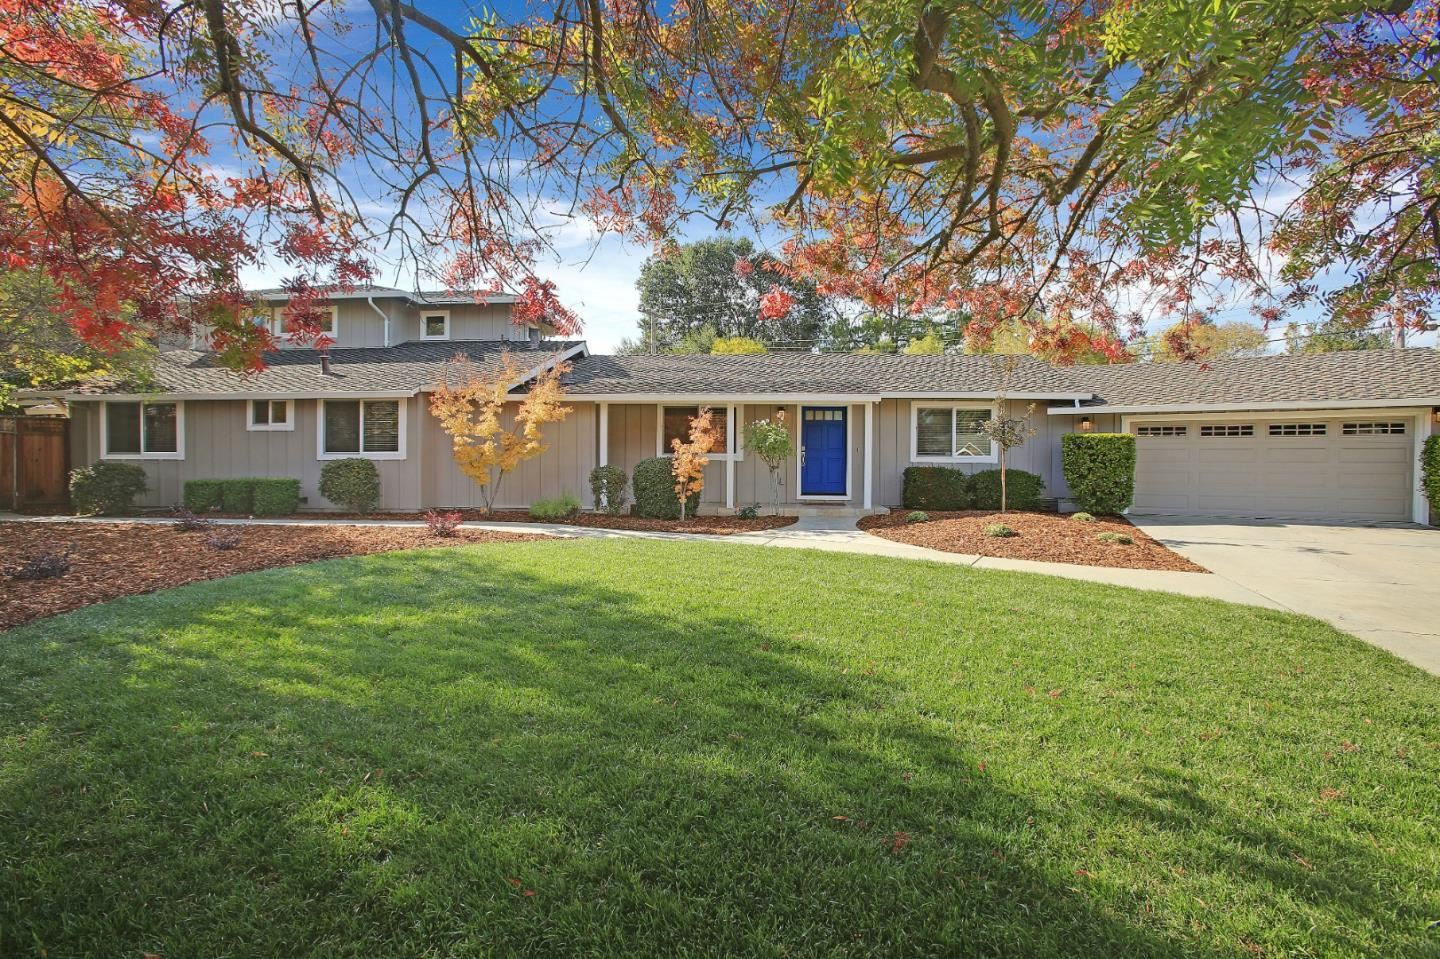 Photo for 1480 Elnora CT, LOS ALTOS, CA 94024 (MLS # ML81817943)